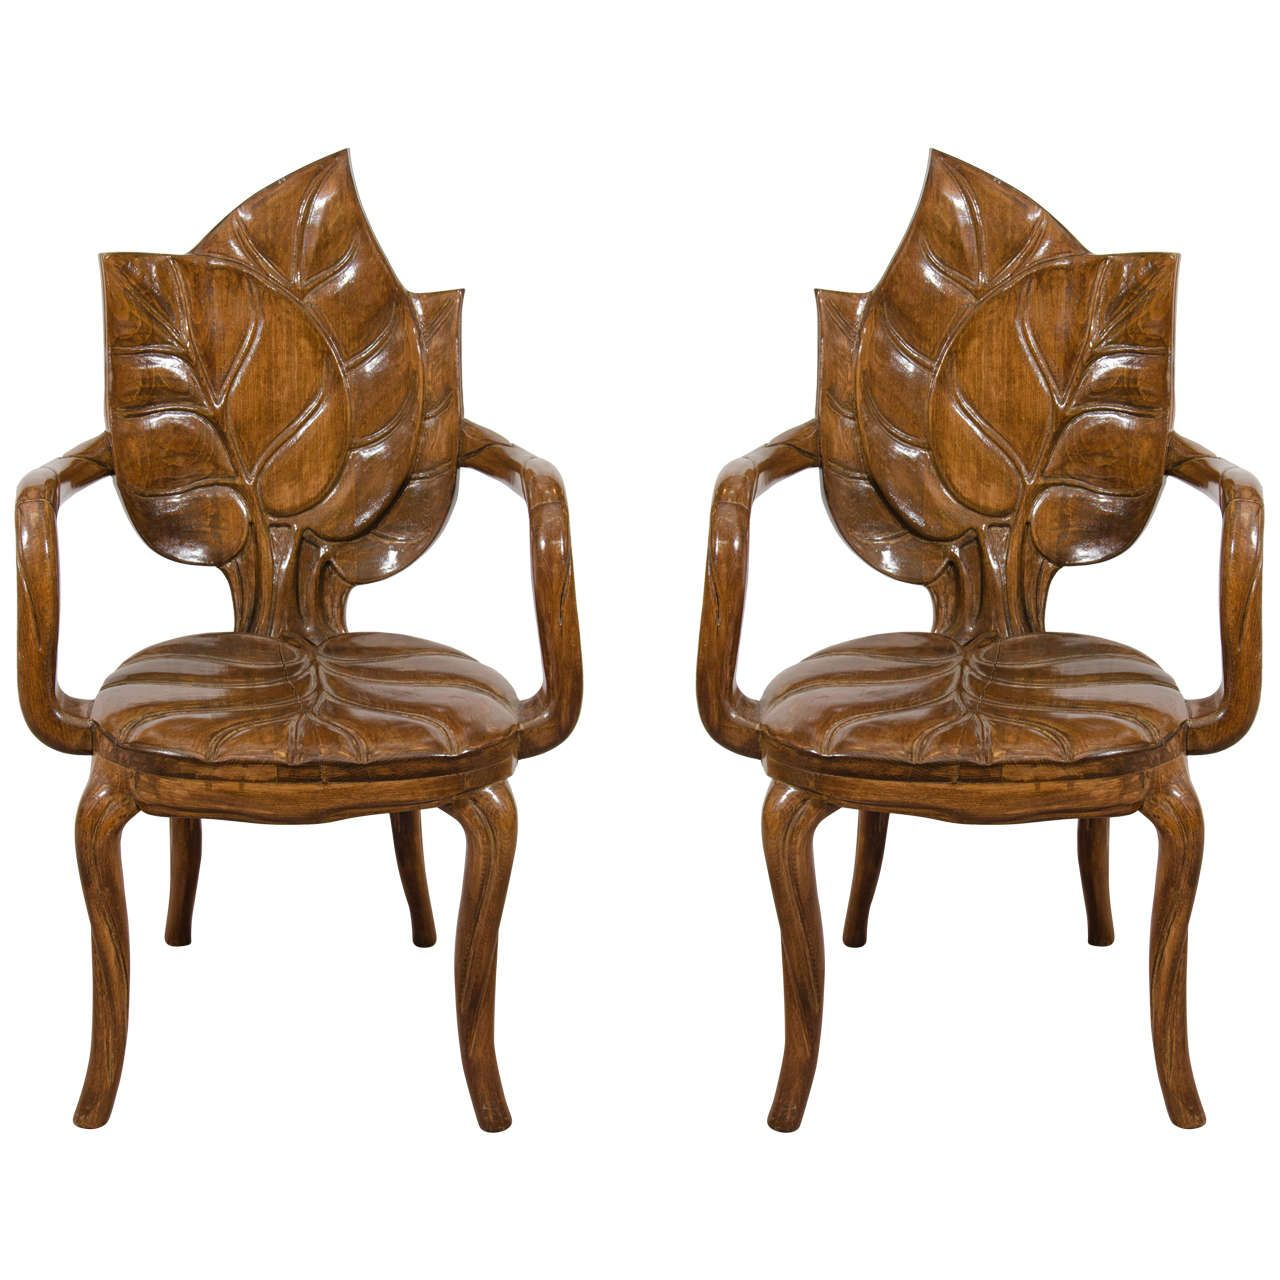 Art Deco Nouveau: Art Nouveau Chairs At 1stdibs